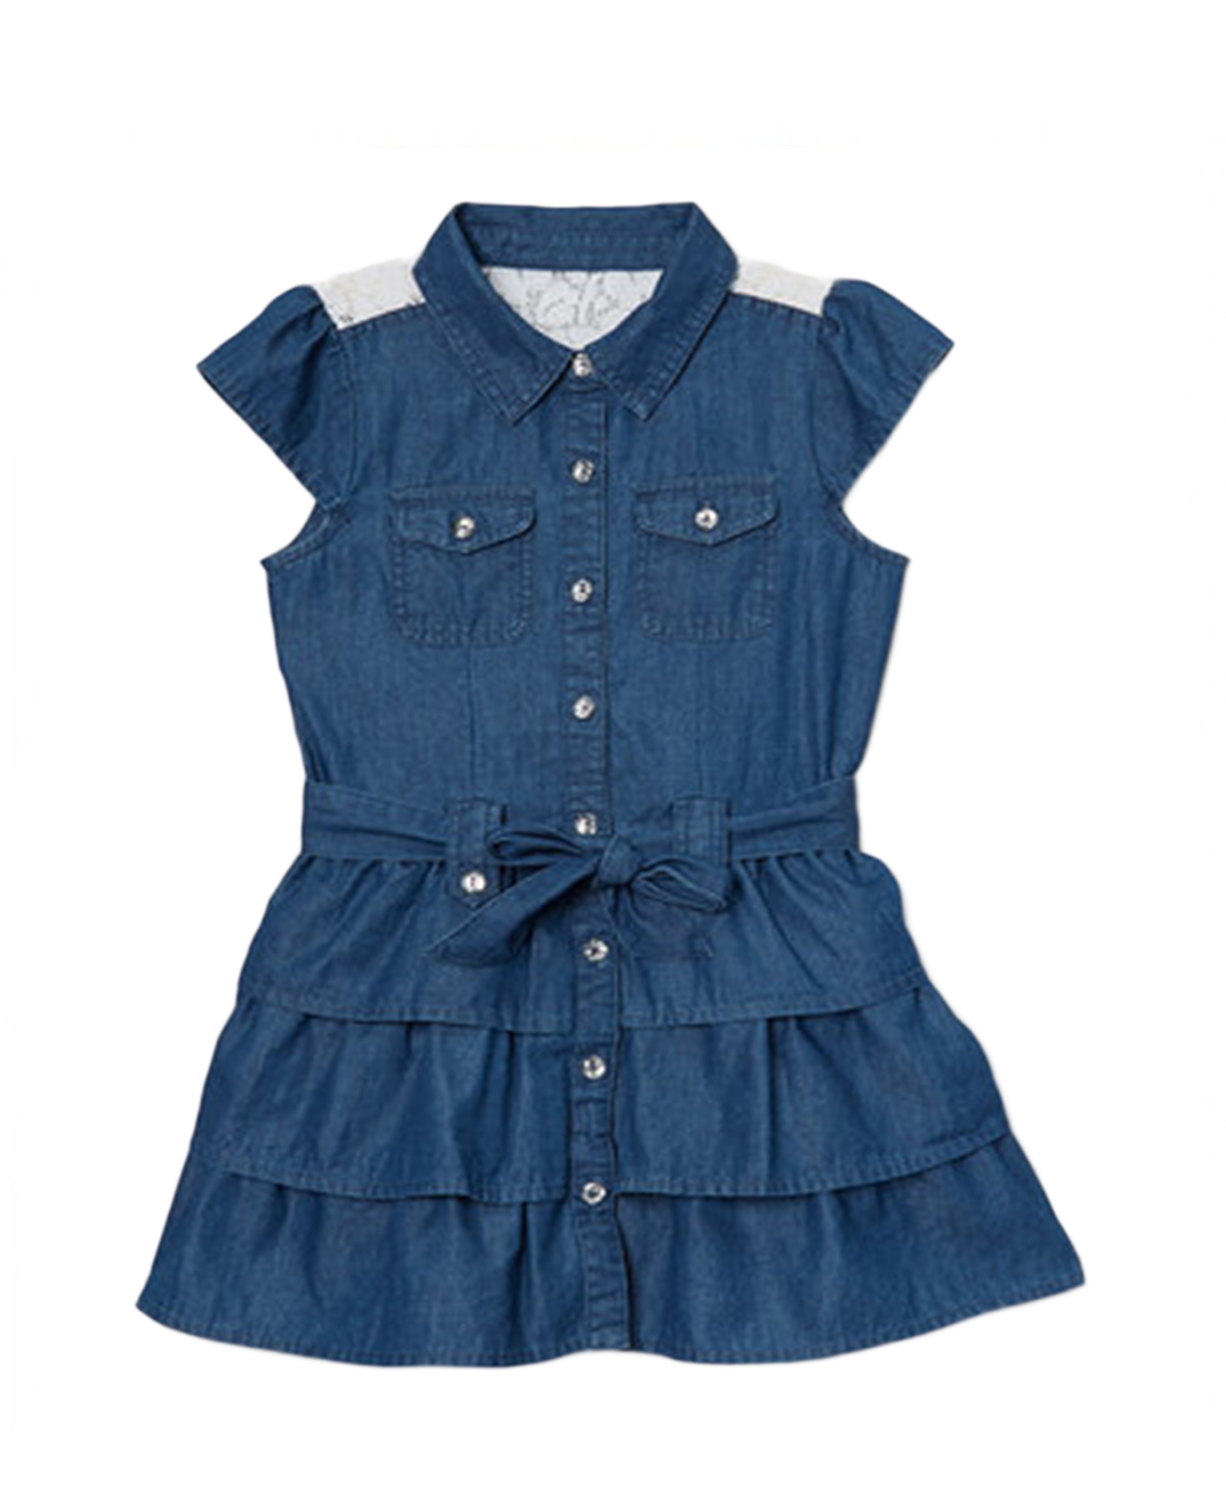 Shop baby girls clothes at Gymboree for wide selection of styles. Find deals on baby girls dresses, tops, bottoms, and accessories.